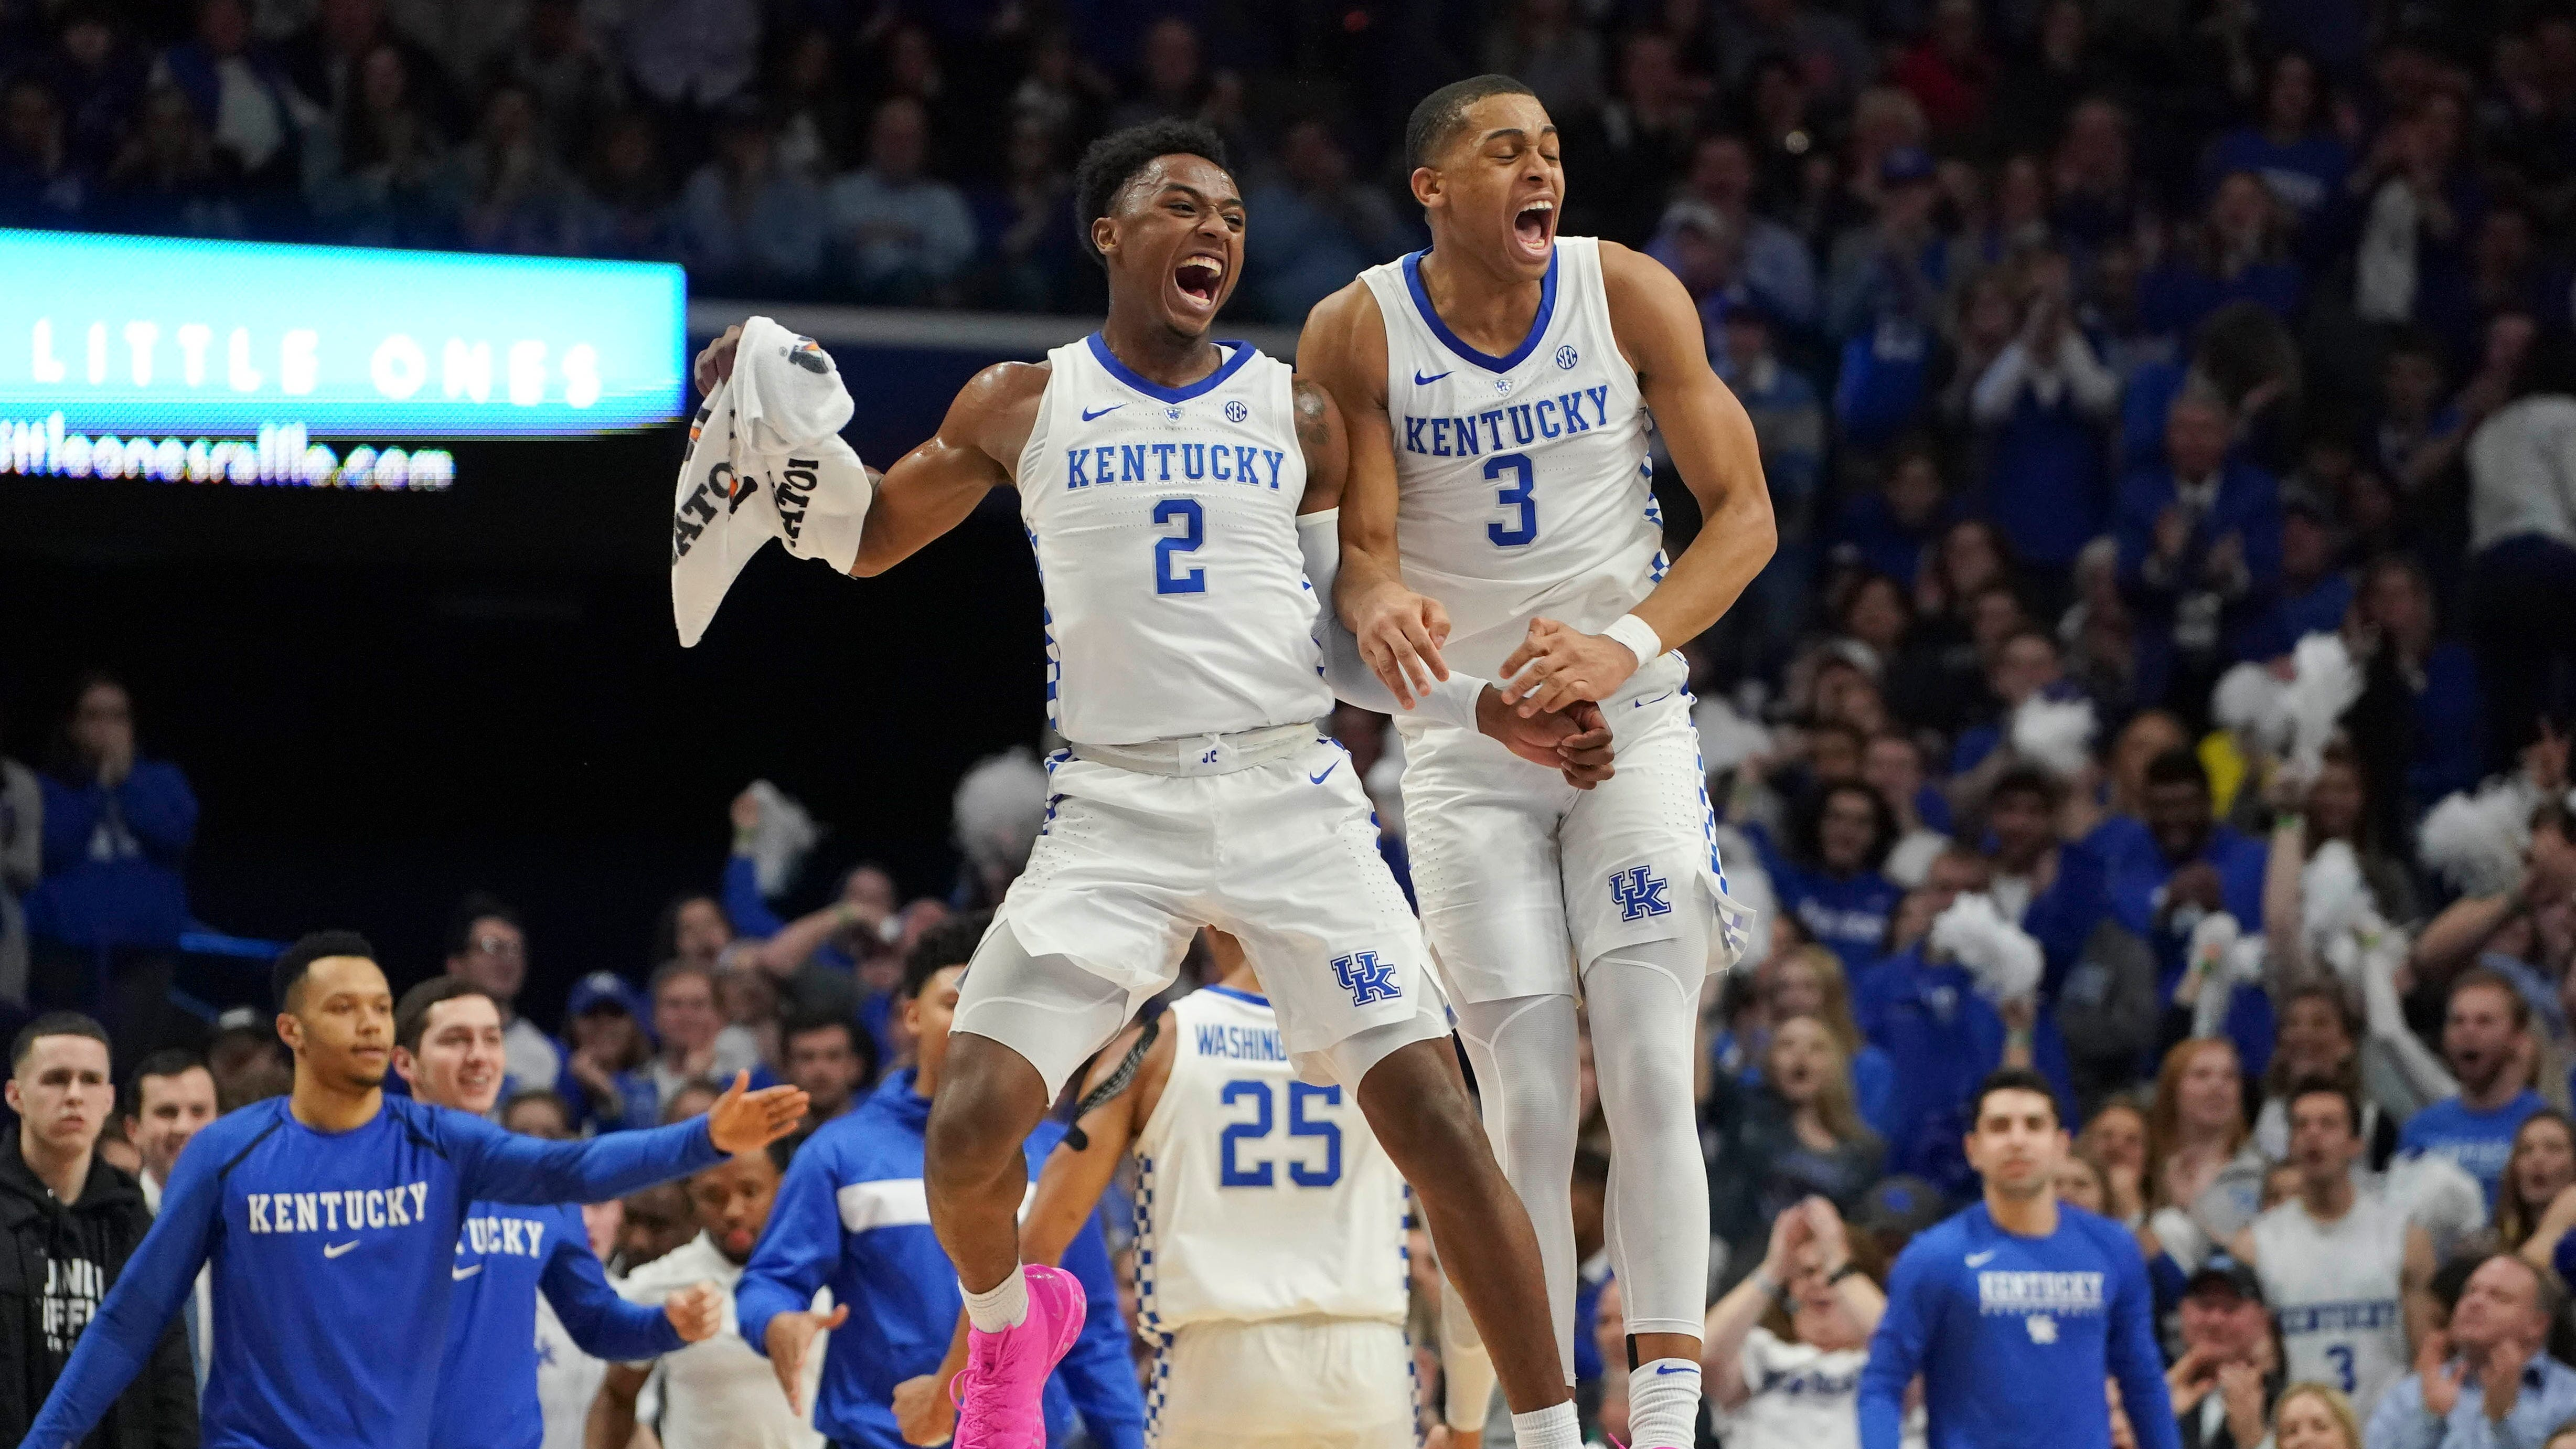 Kentucky Basketball: Kentucky Basketball: What Will It Take To Get A No. 1 Seed?